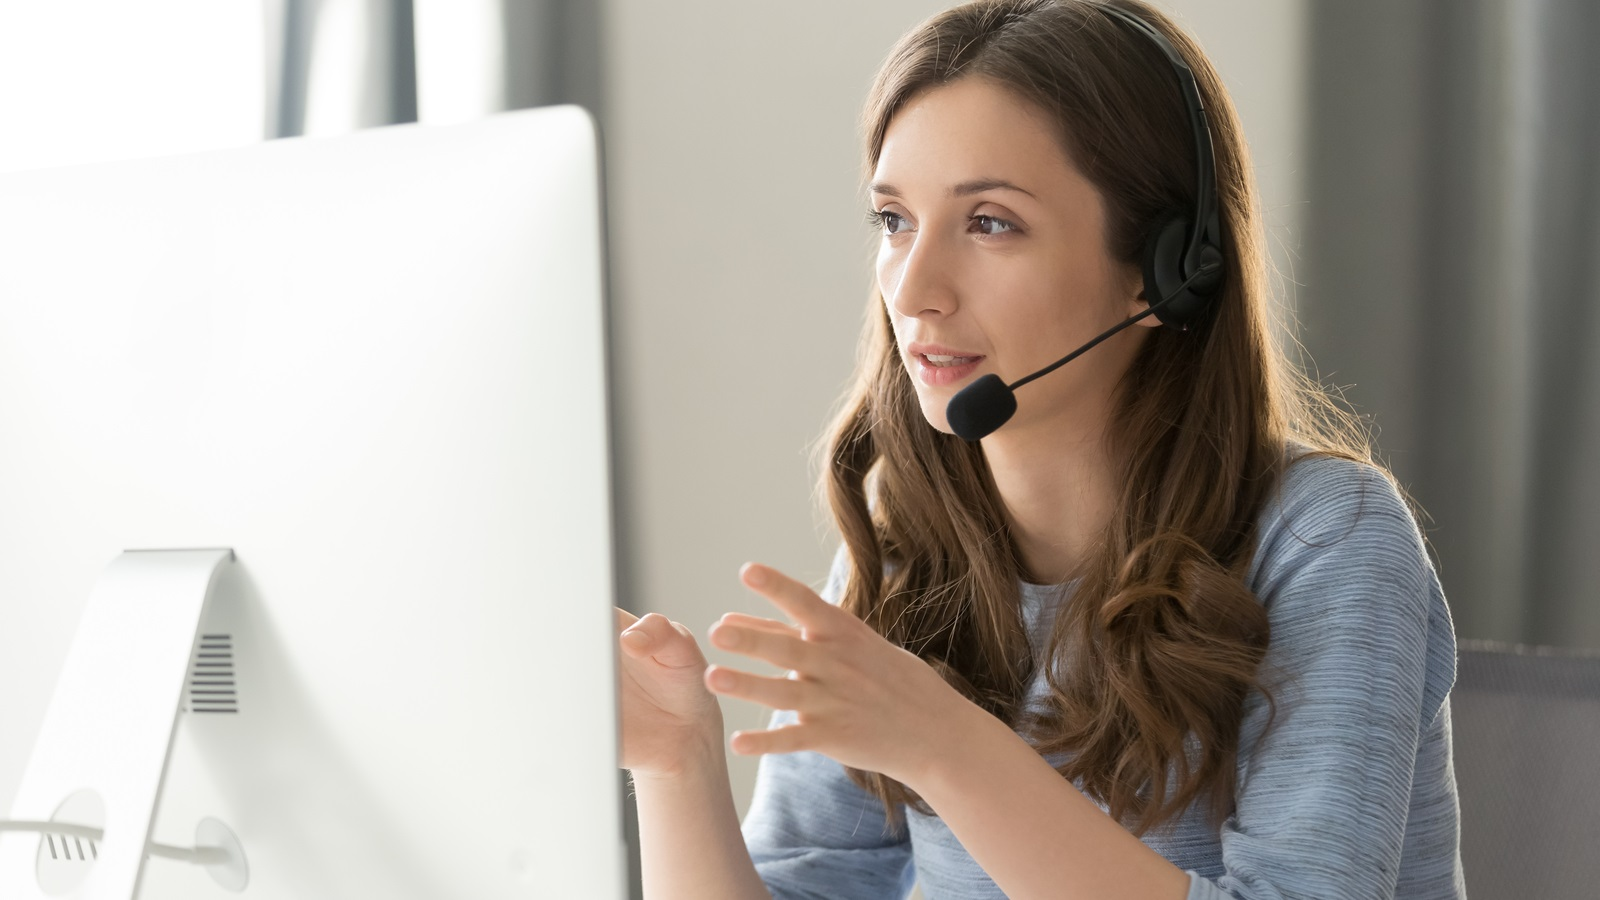 Remote Support Software Buyer's Guide by ScreenMeet